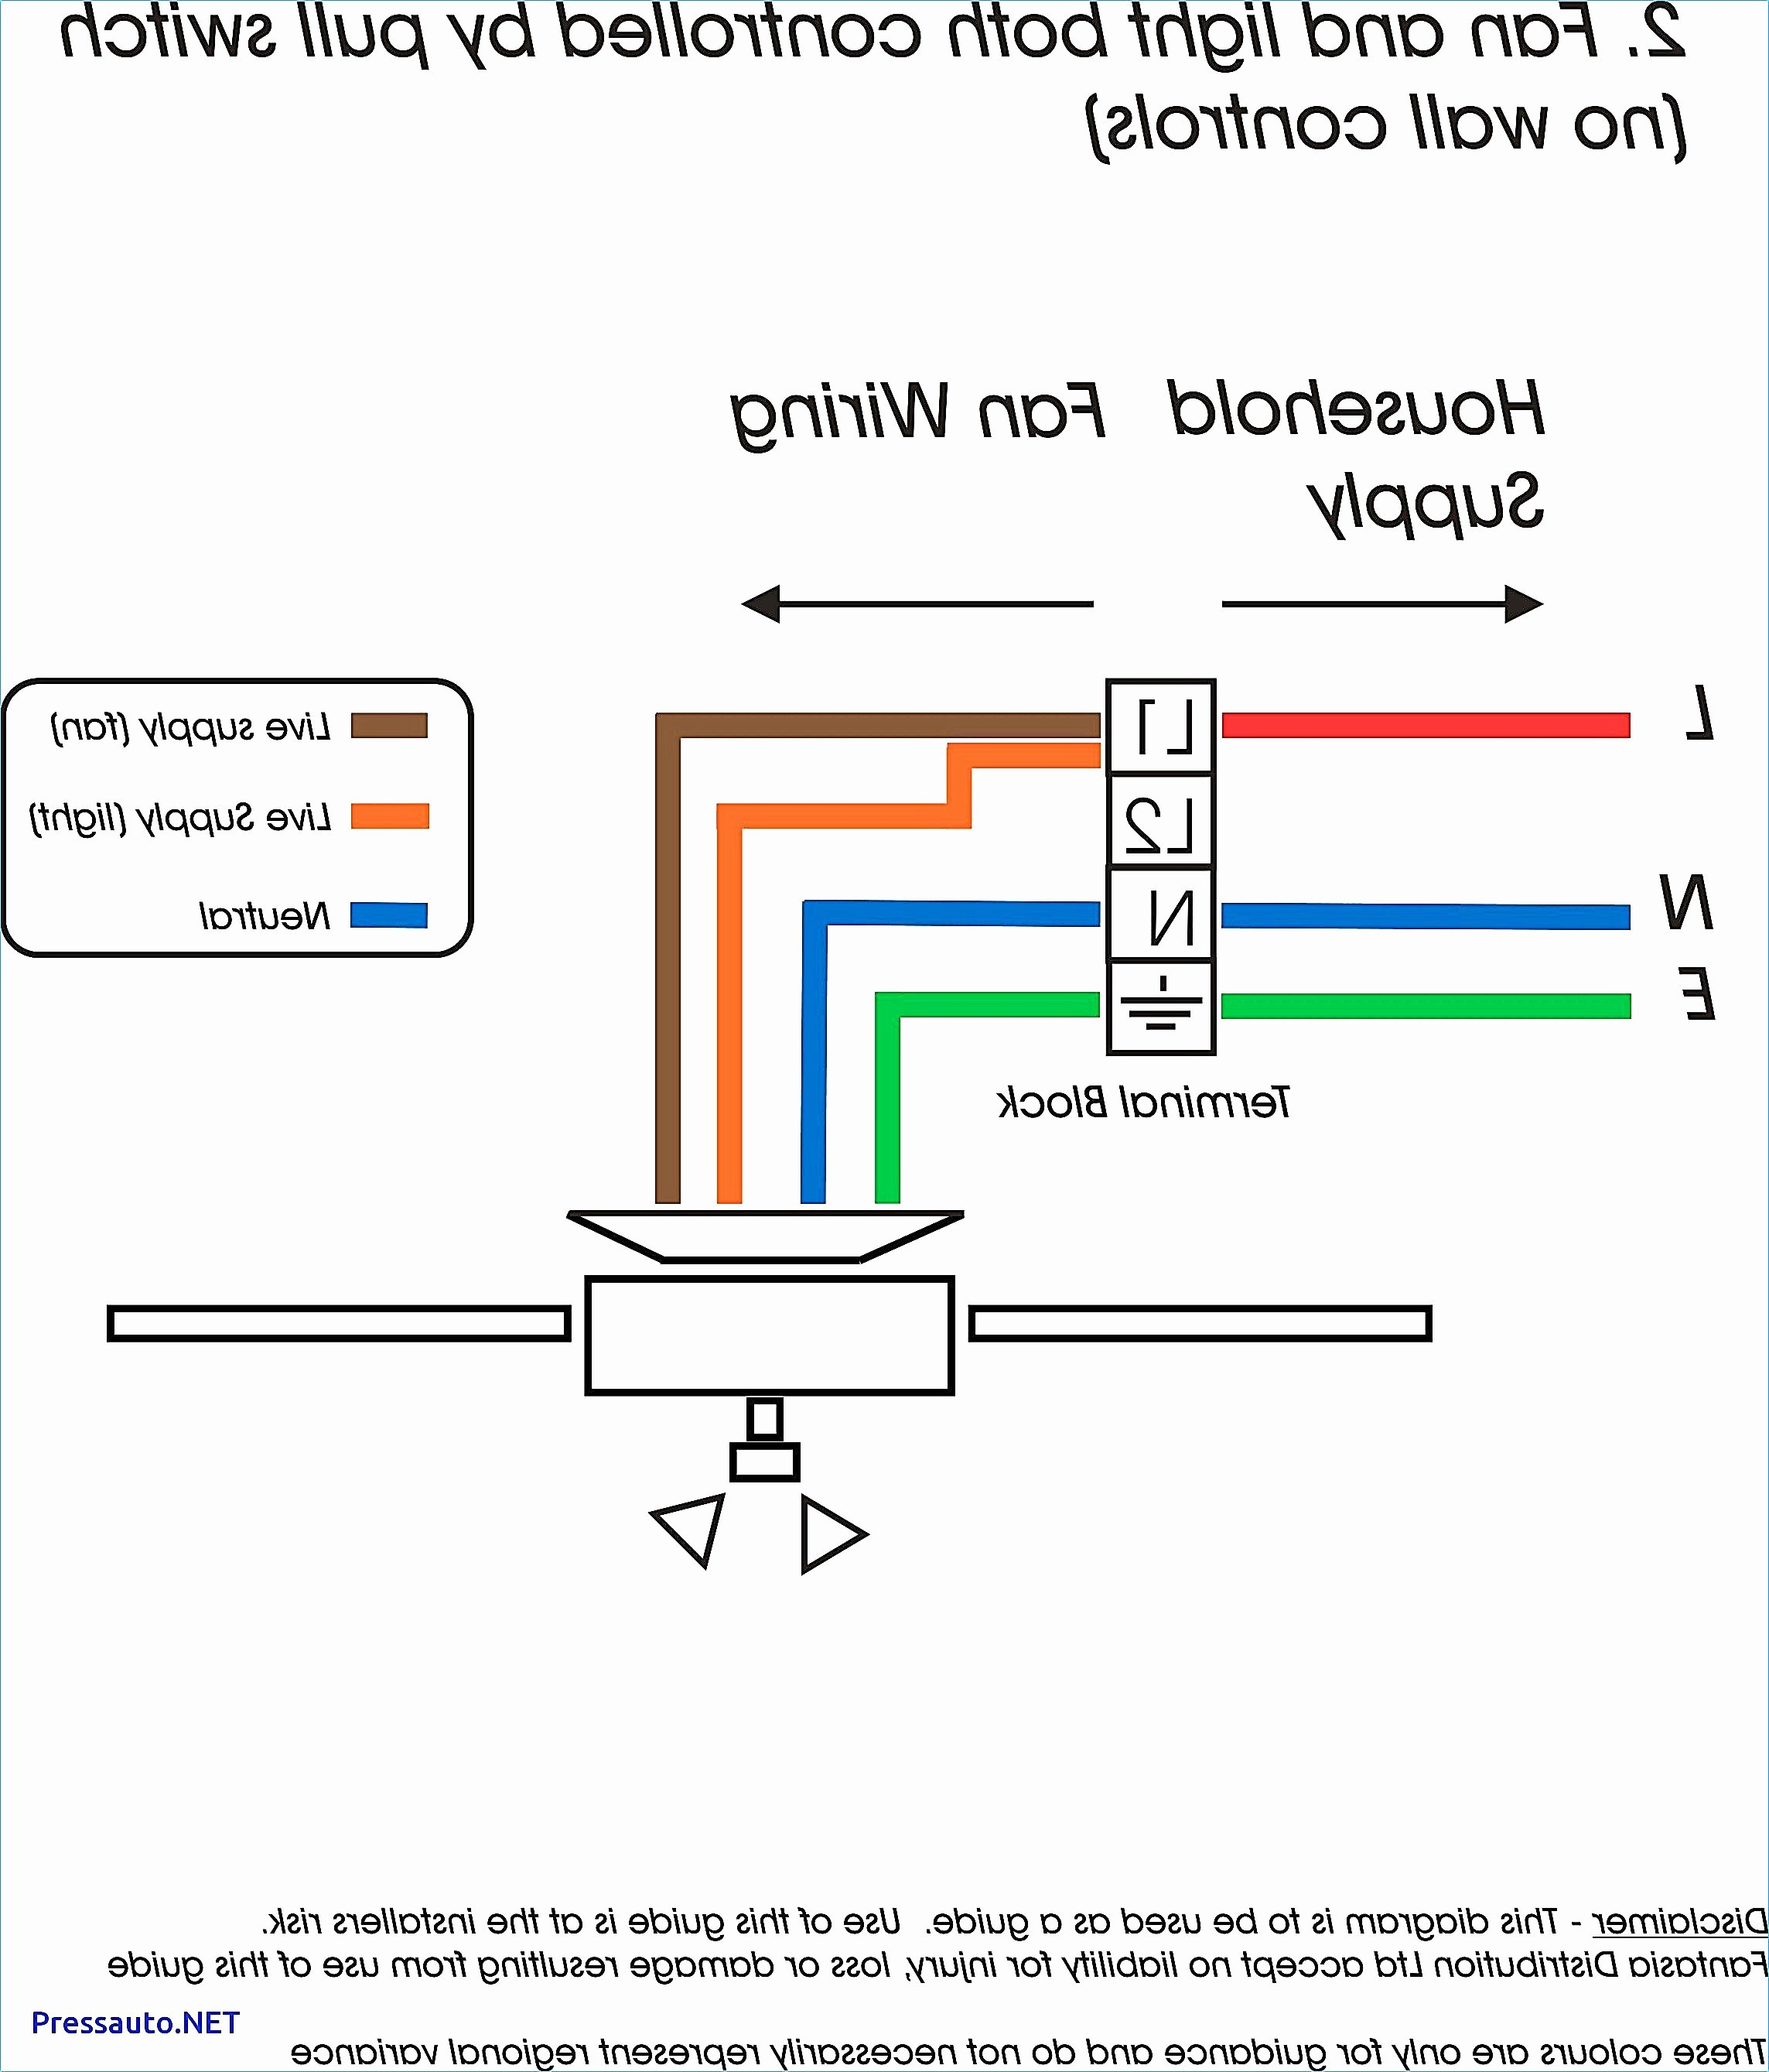 eaton transfer switch wiring diagram Collection-Eaton Transfer Switch Wiring Diagram Ul924 Relay Wiring Diagram Save Enchanting Awn Wire Alpha Style 18-f